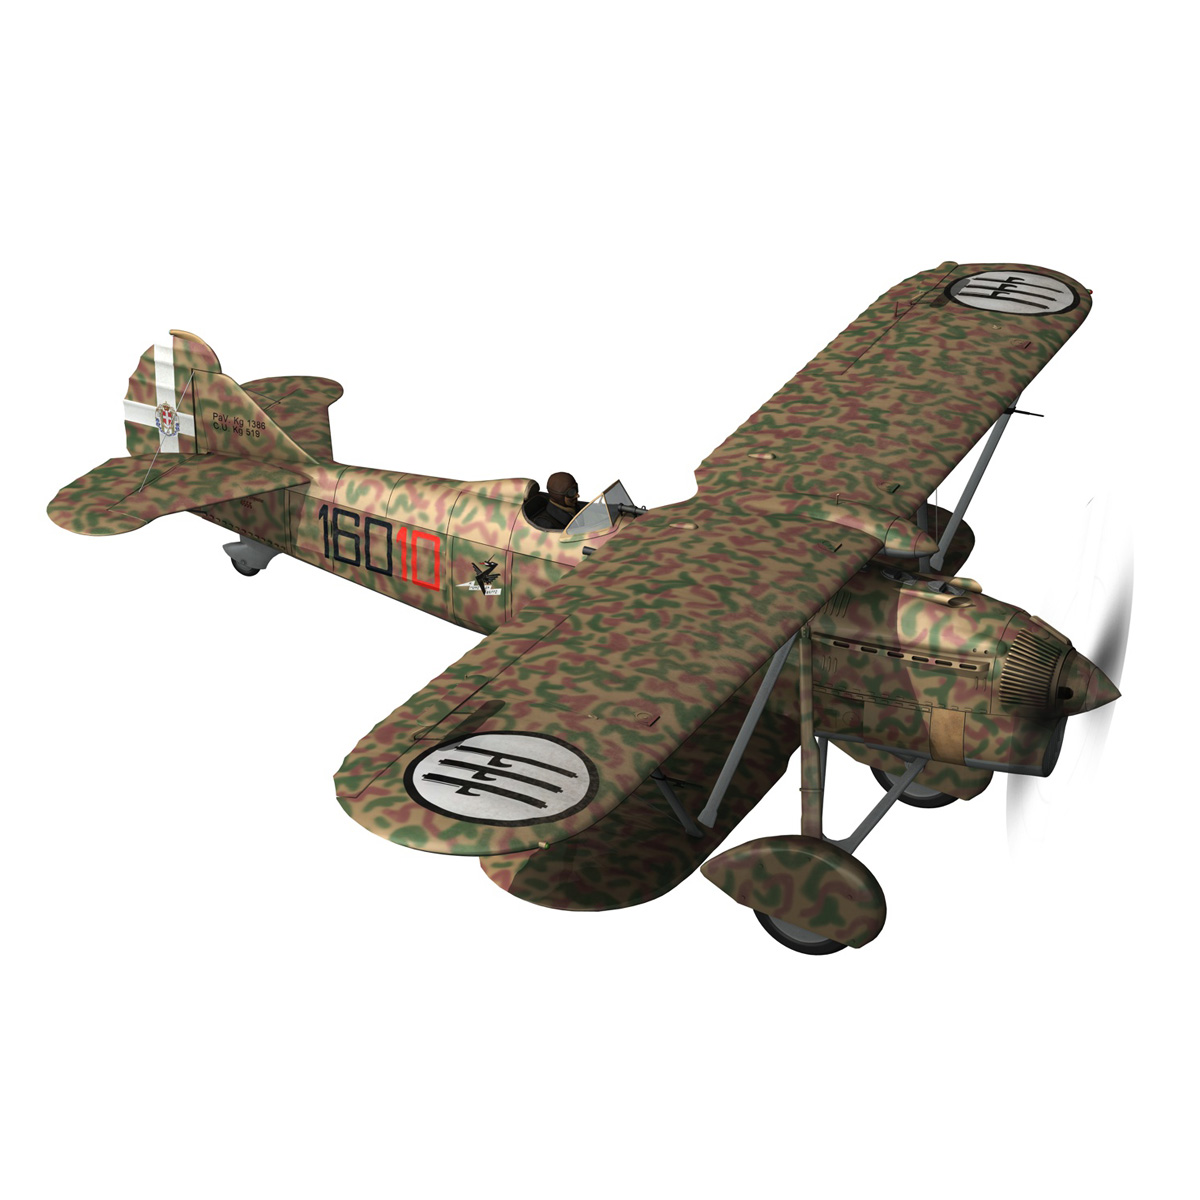 fiat cr.32 – italy airforce – 160 squadriglia 3d model fbx c4d lwo obj 268107